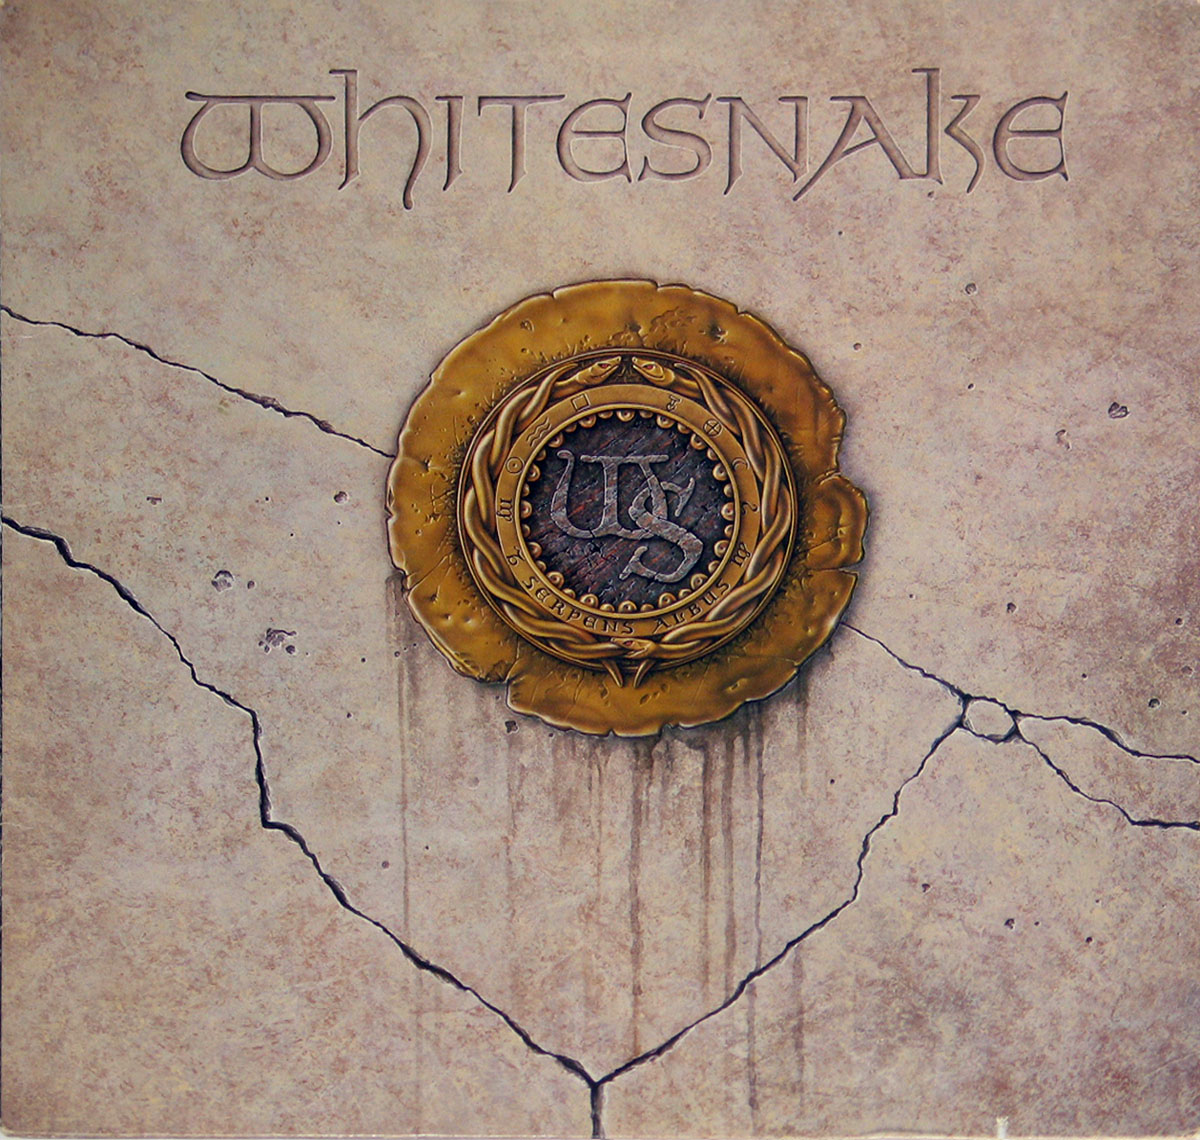 High Resolution Photos of whitesnake self-titled usa